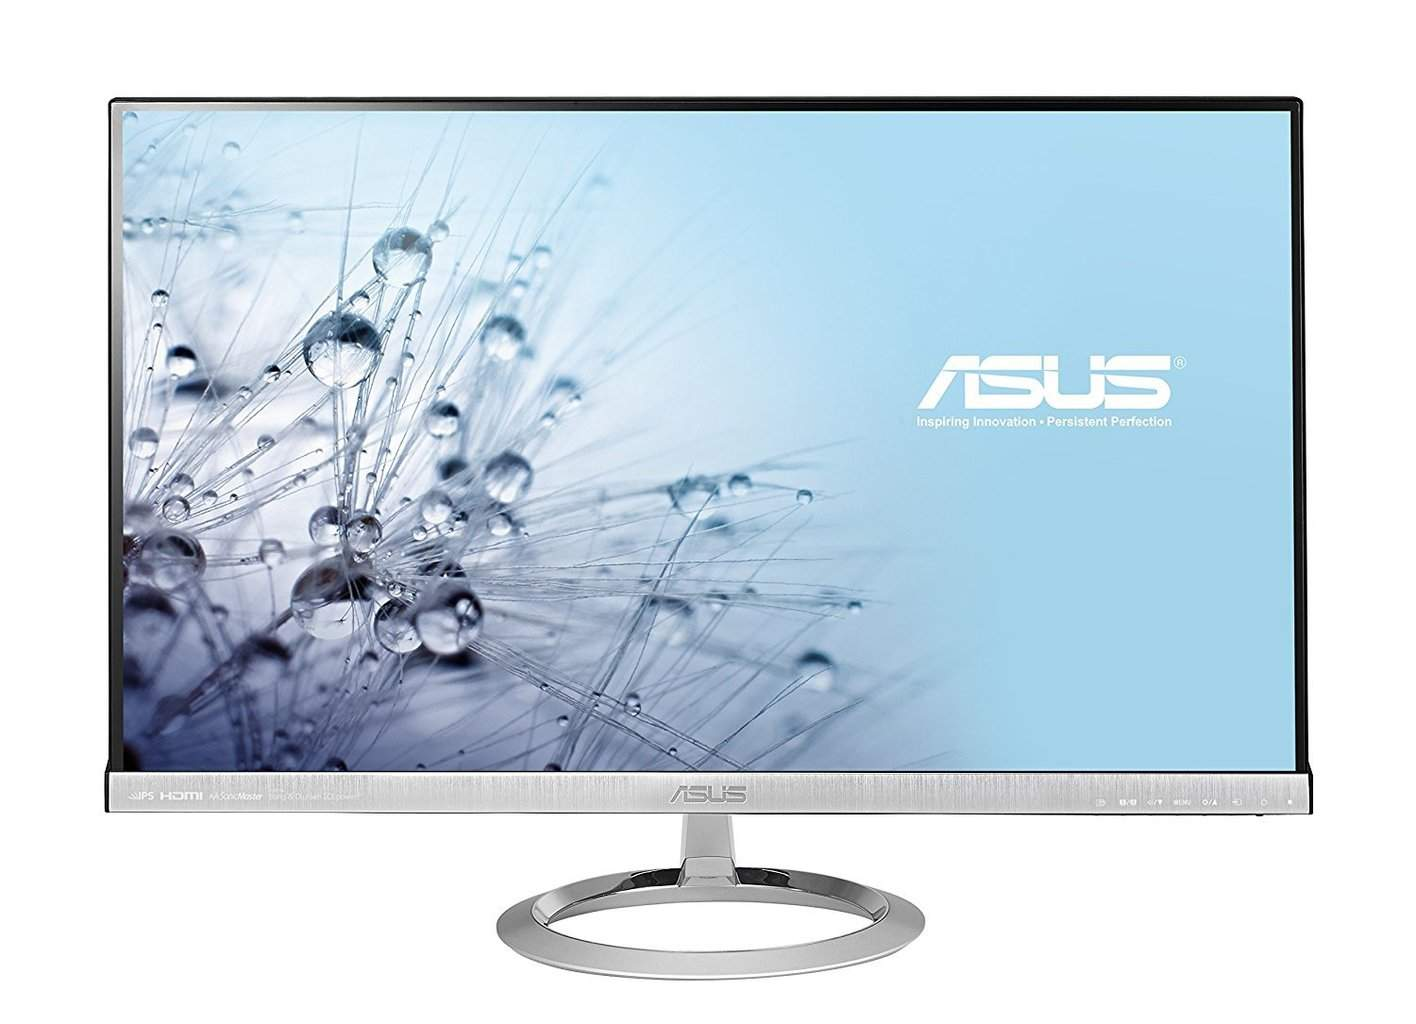 ASUS MX279H Review: 27-inch Frameless IPS Monitor